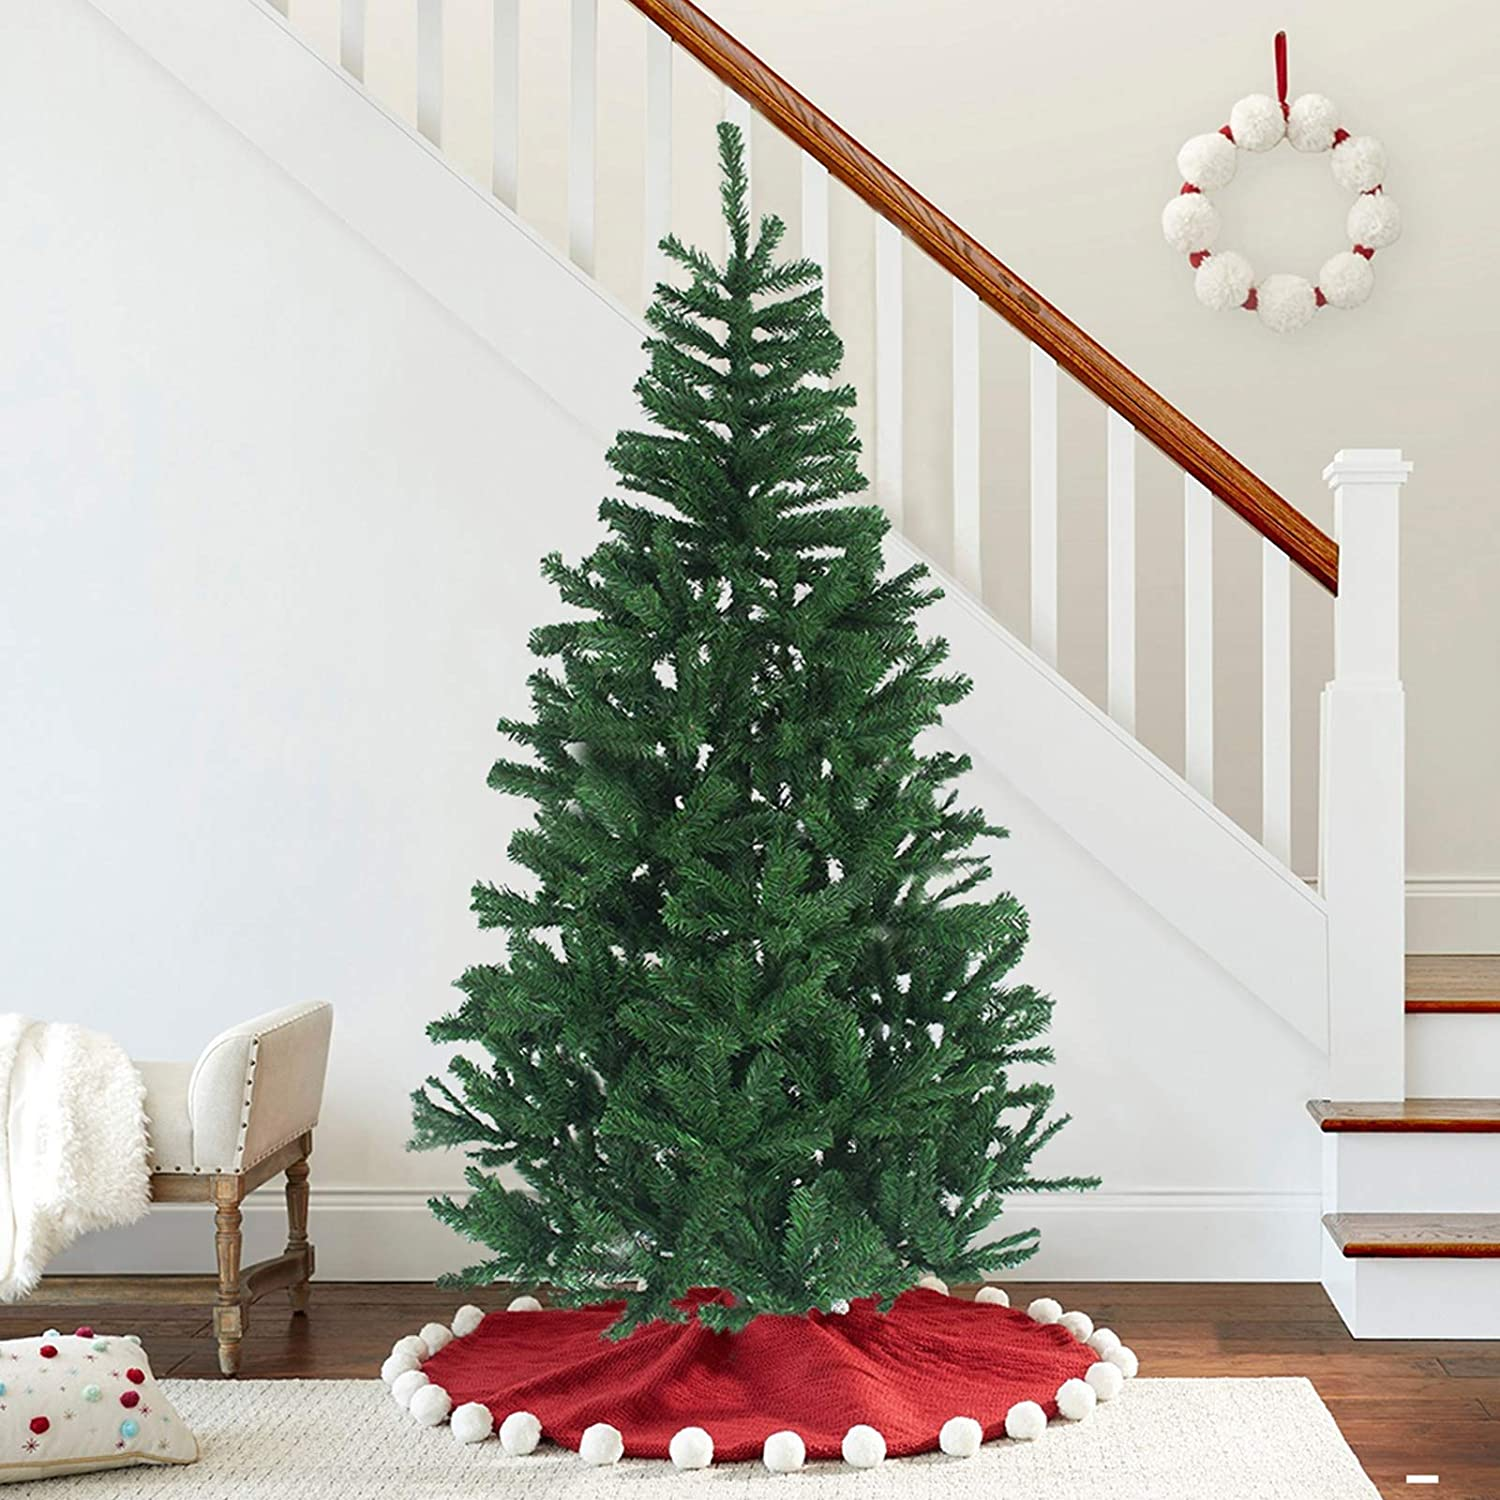 Amazon Com Maggift 6 Ft Artificial Christmas Tree Upgrade Fake Xmas Tree With Premium Metal Legs Home Holiday Christmas Decorations Easy Assembly 850 Tips Home Kitchen